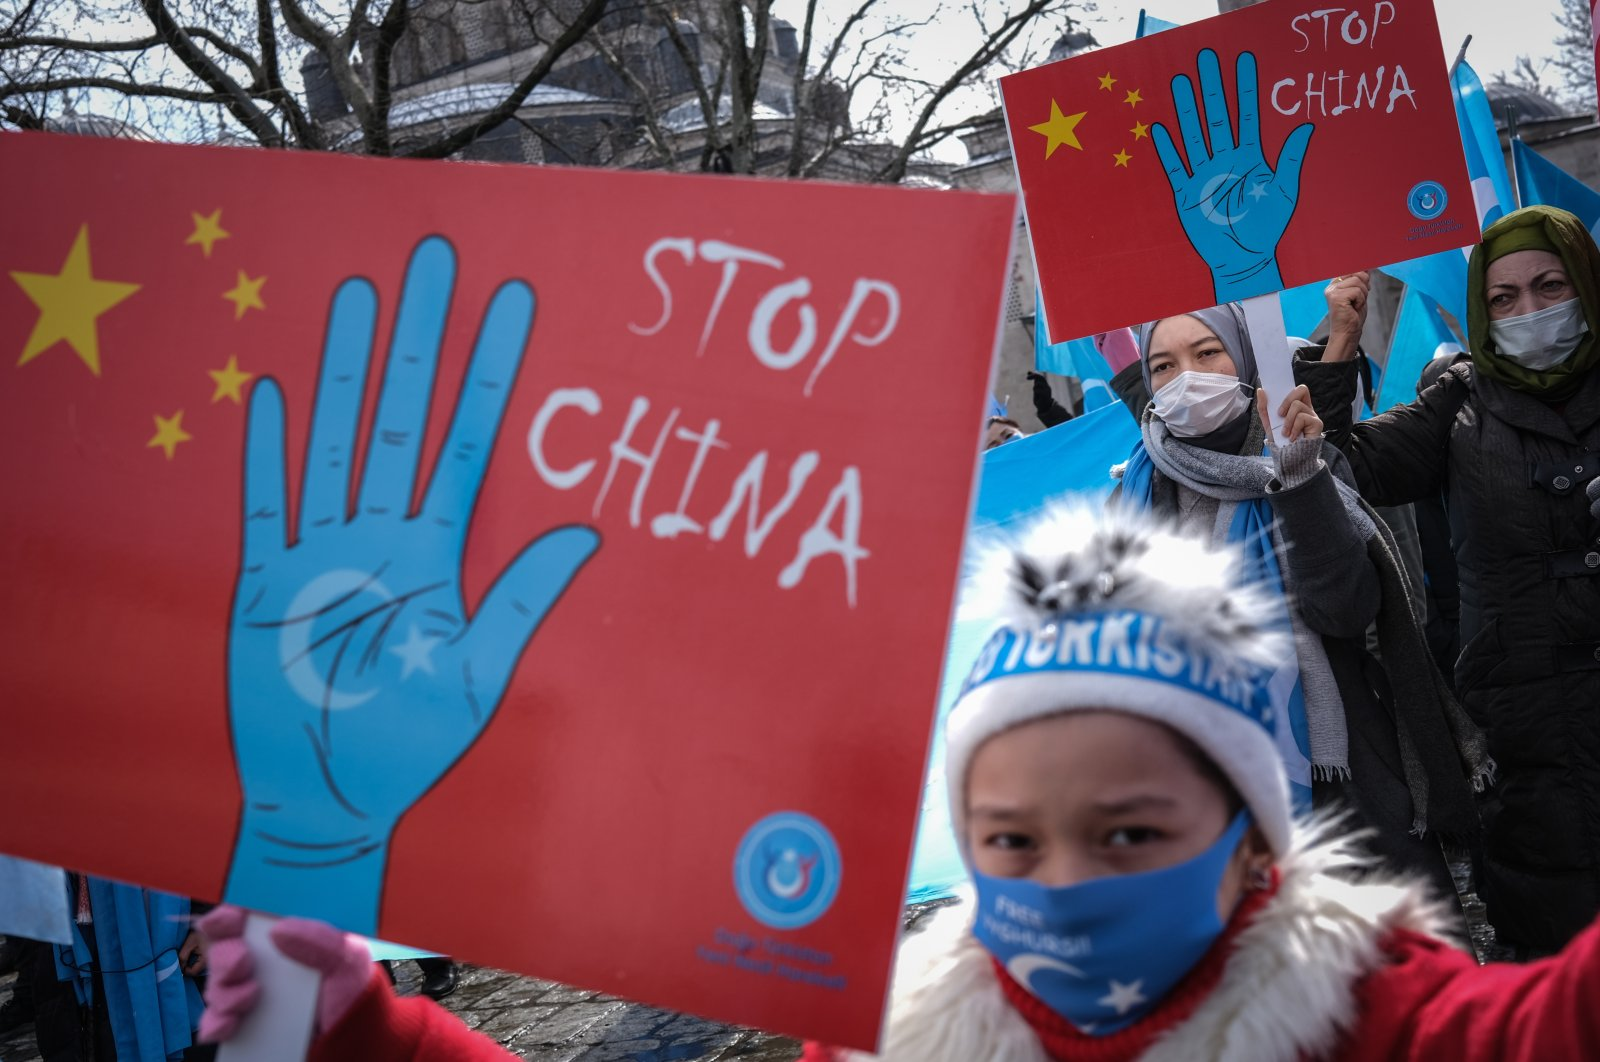 Uyghur protestors who have not heard from their families living in Xinjiang hold placards and Uyghur flags during a protest against China, in Istanbul, Turkey, March 25, 2021. (EPA Photo)